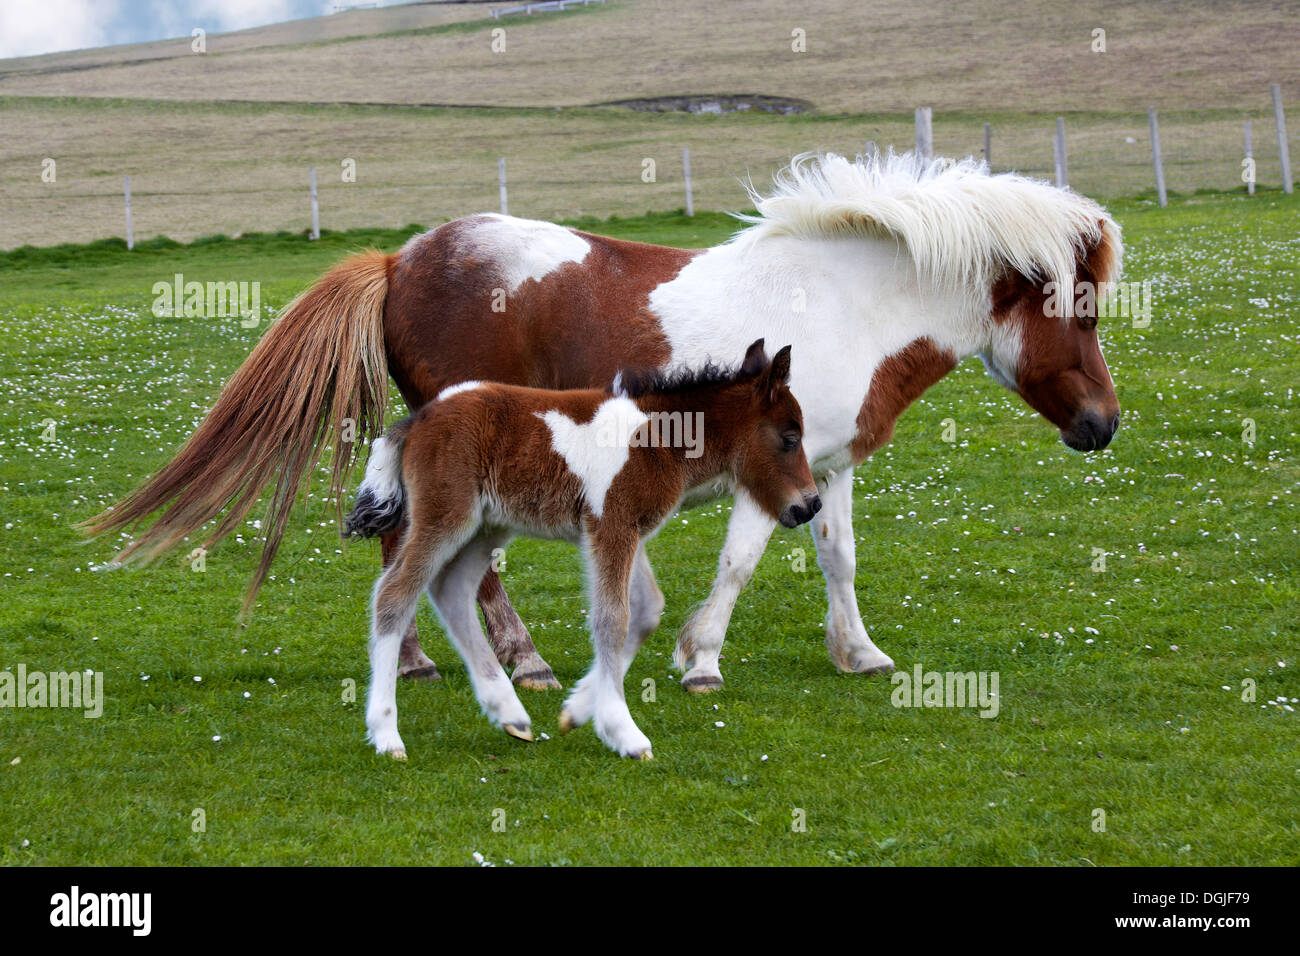 Shetland pony and foal. - Stock Image